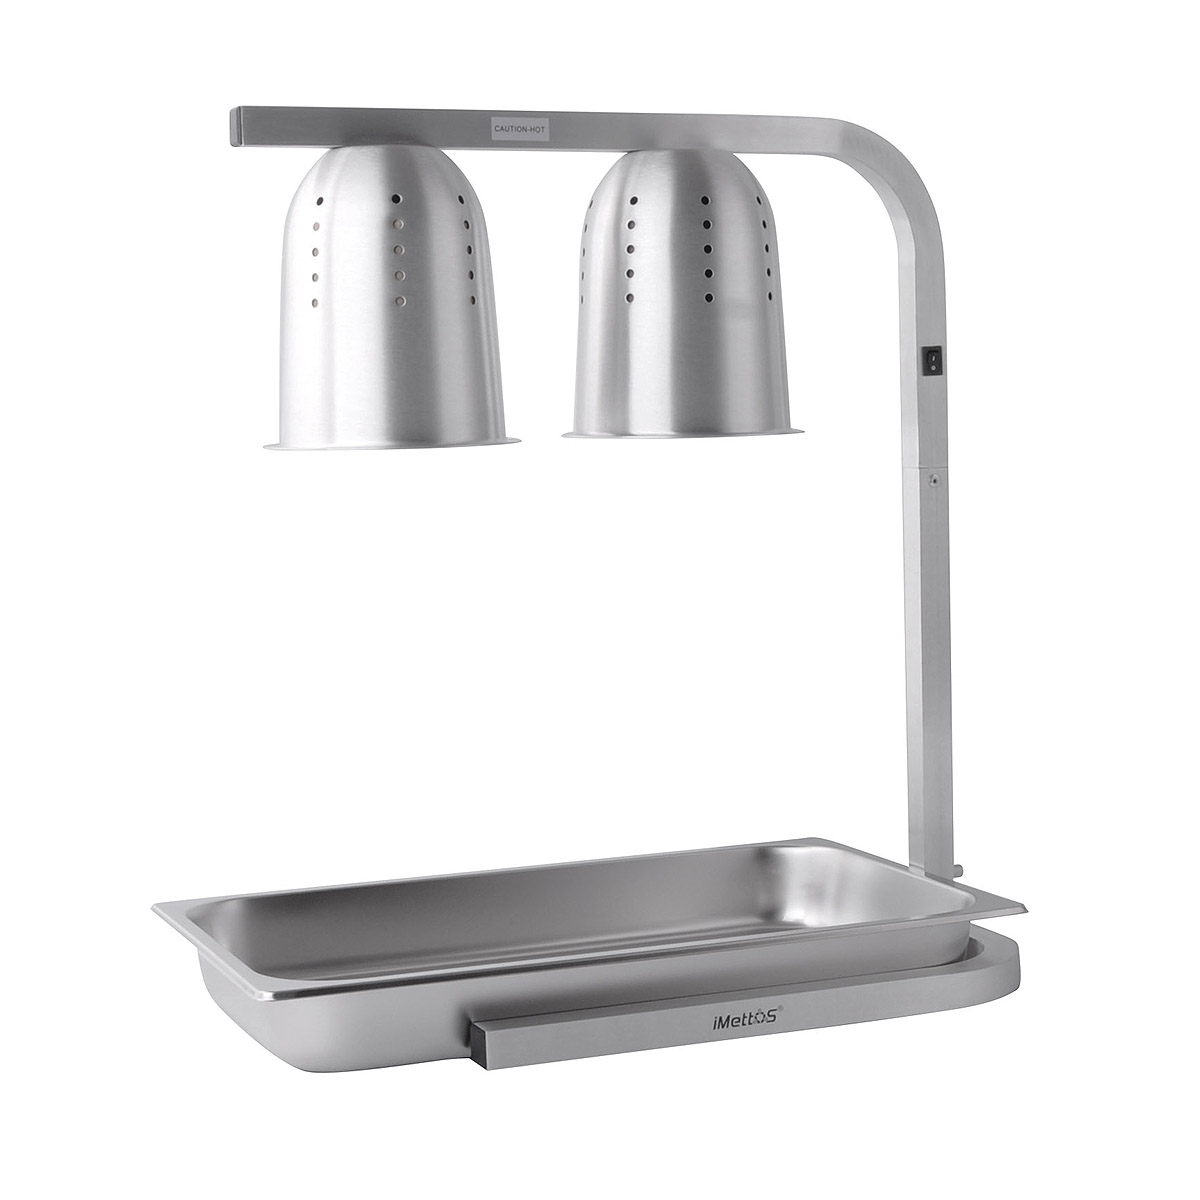 Infrared Food Warmer With Pan iMettos